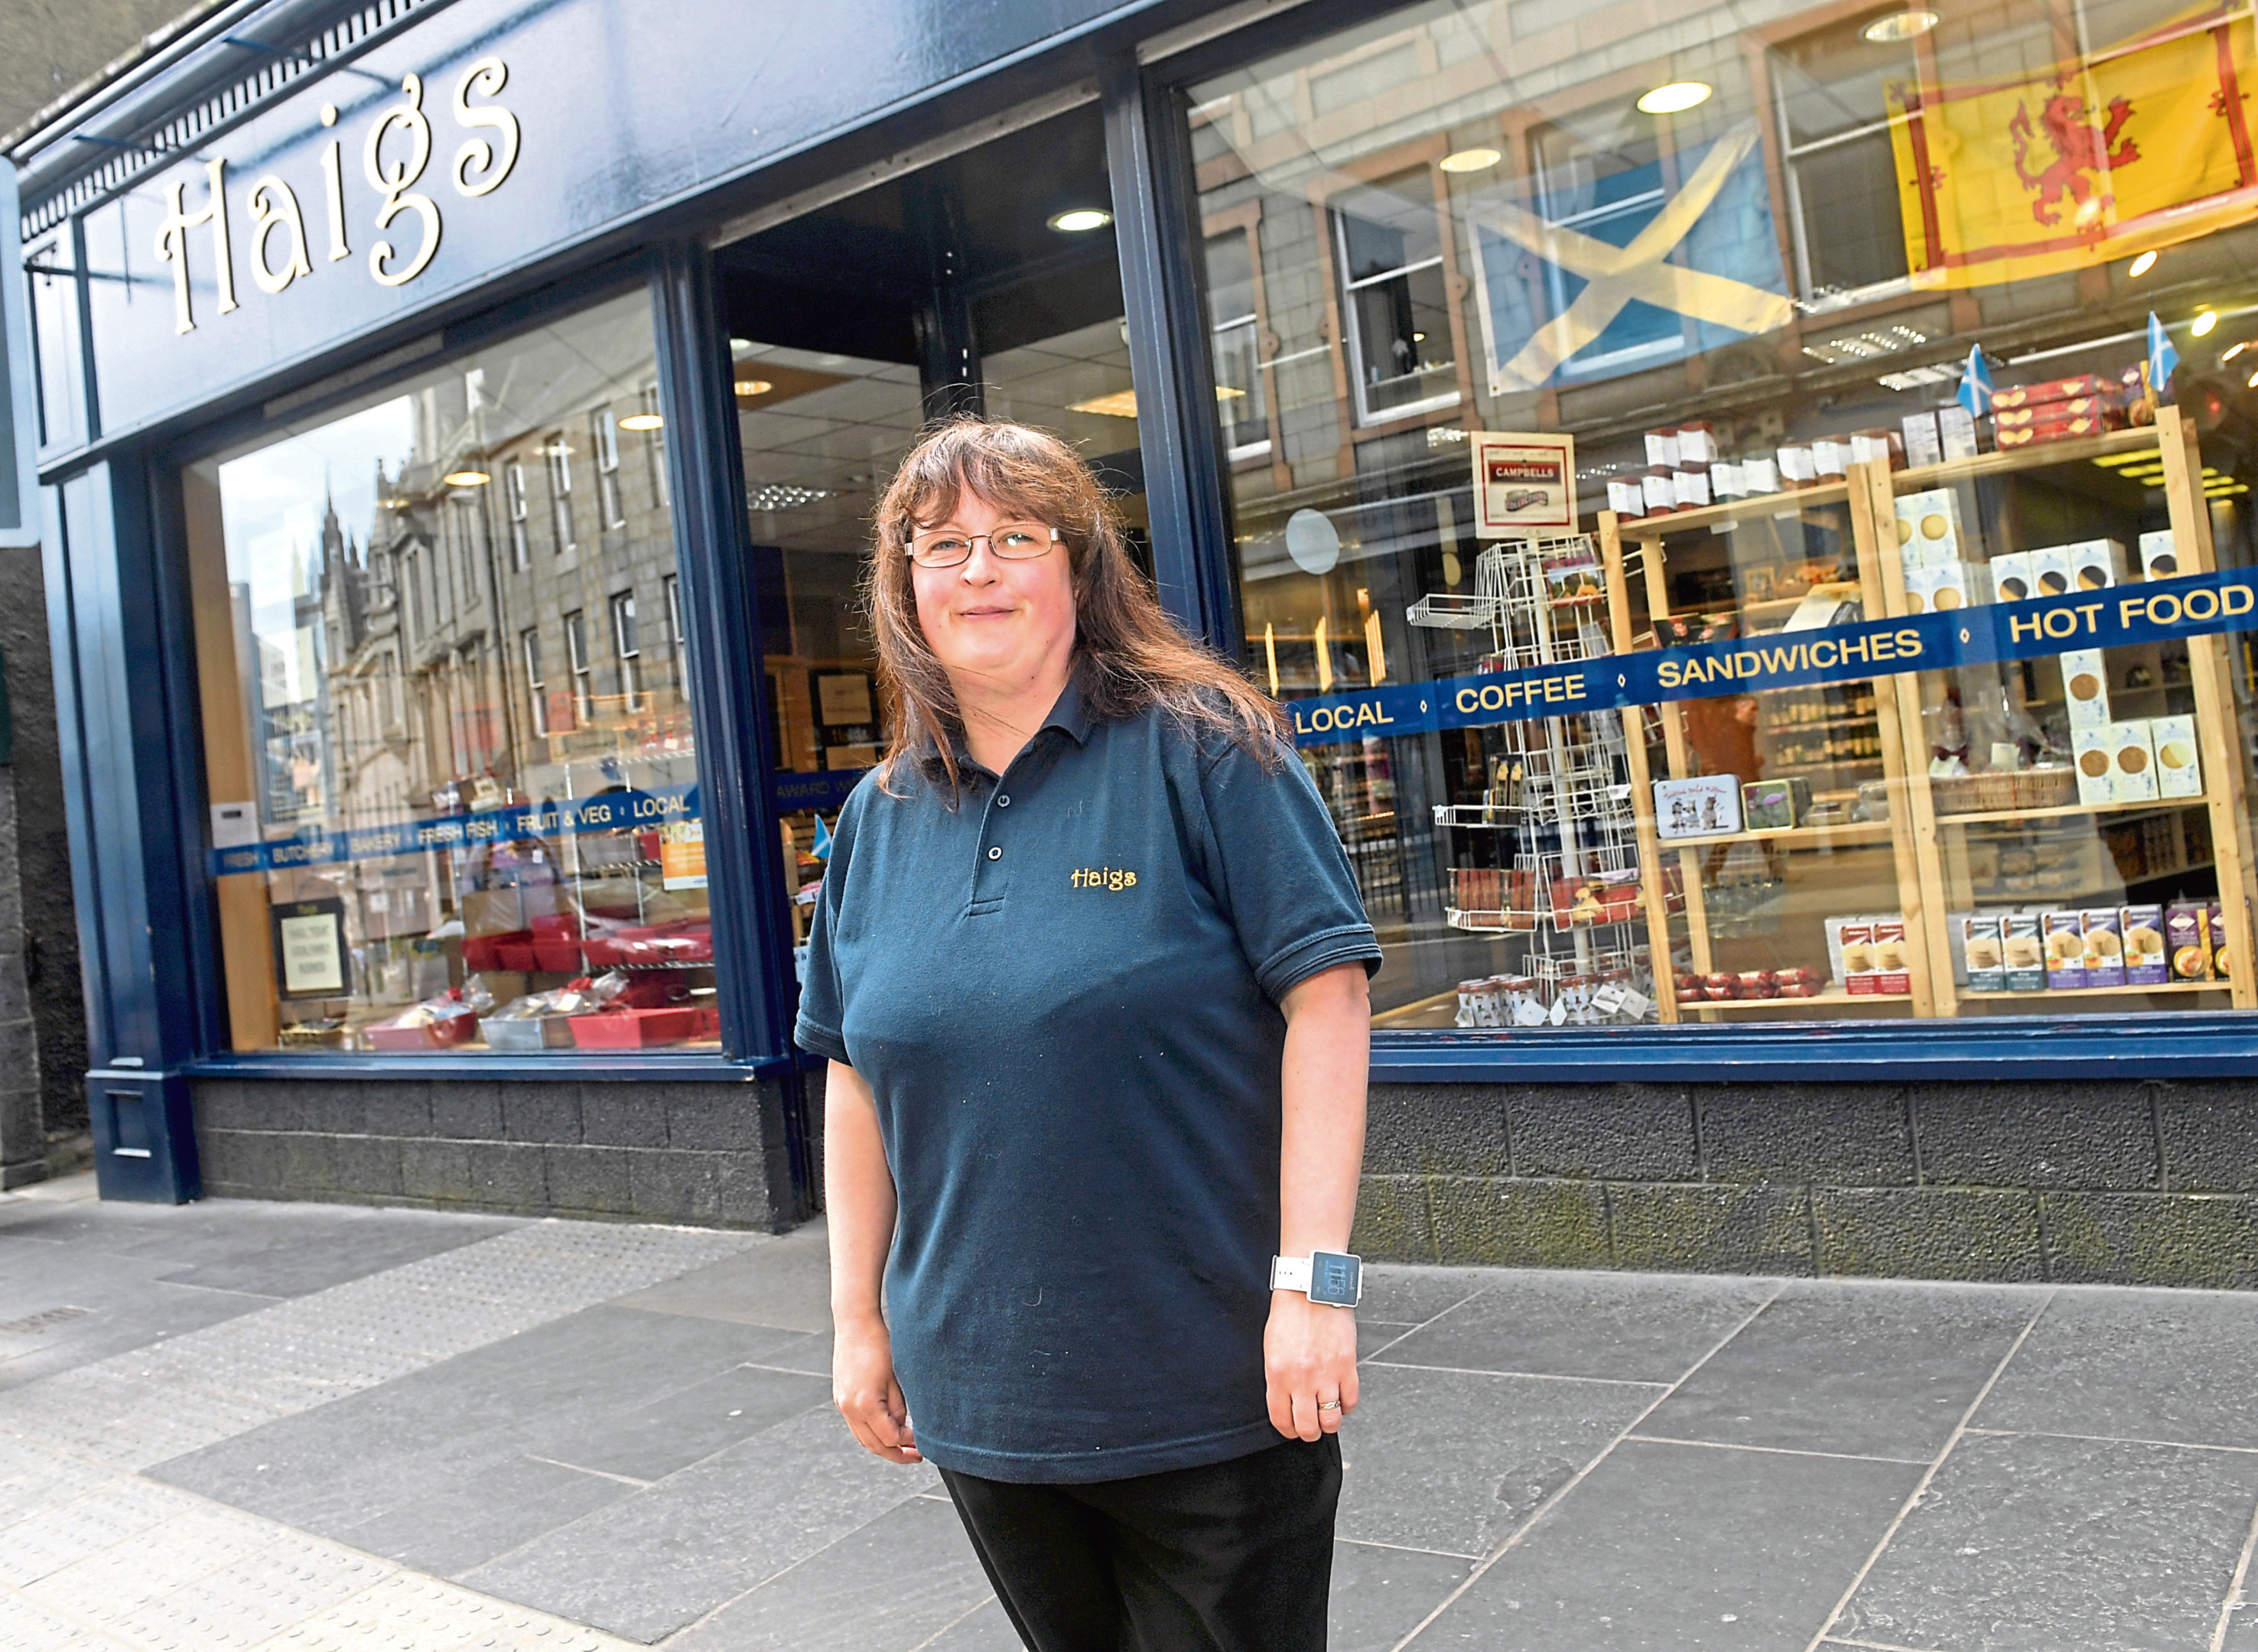 Retail Awards feature. Julie Haig at Haigs, Schoolhill. 06/06/18. Picture by KATH FLANNERY